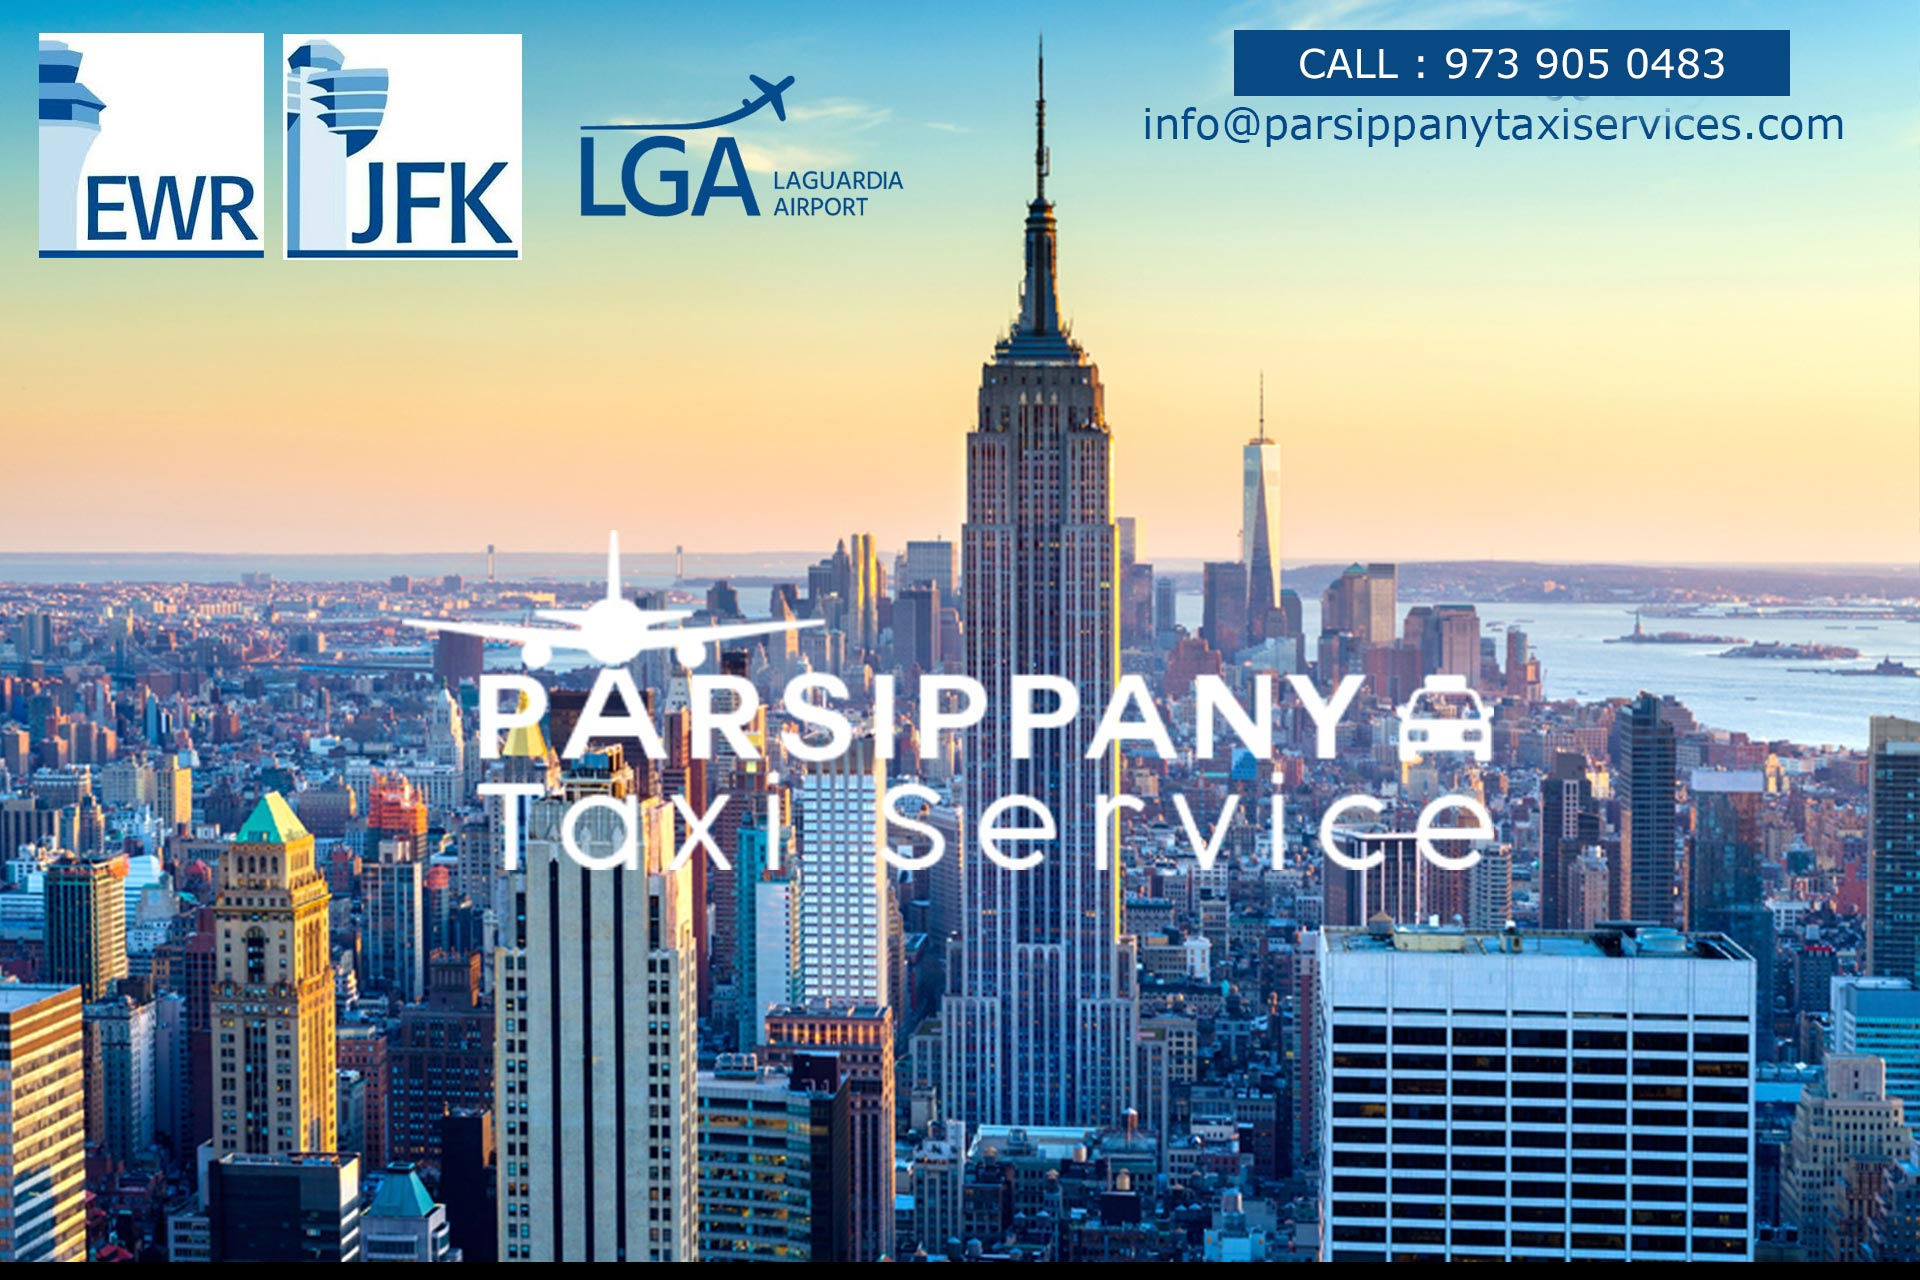 Parsippany Taxi Services